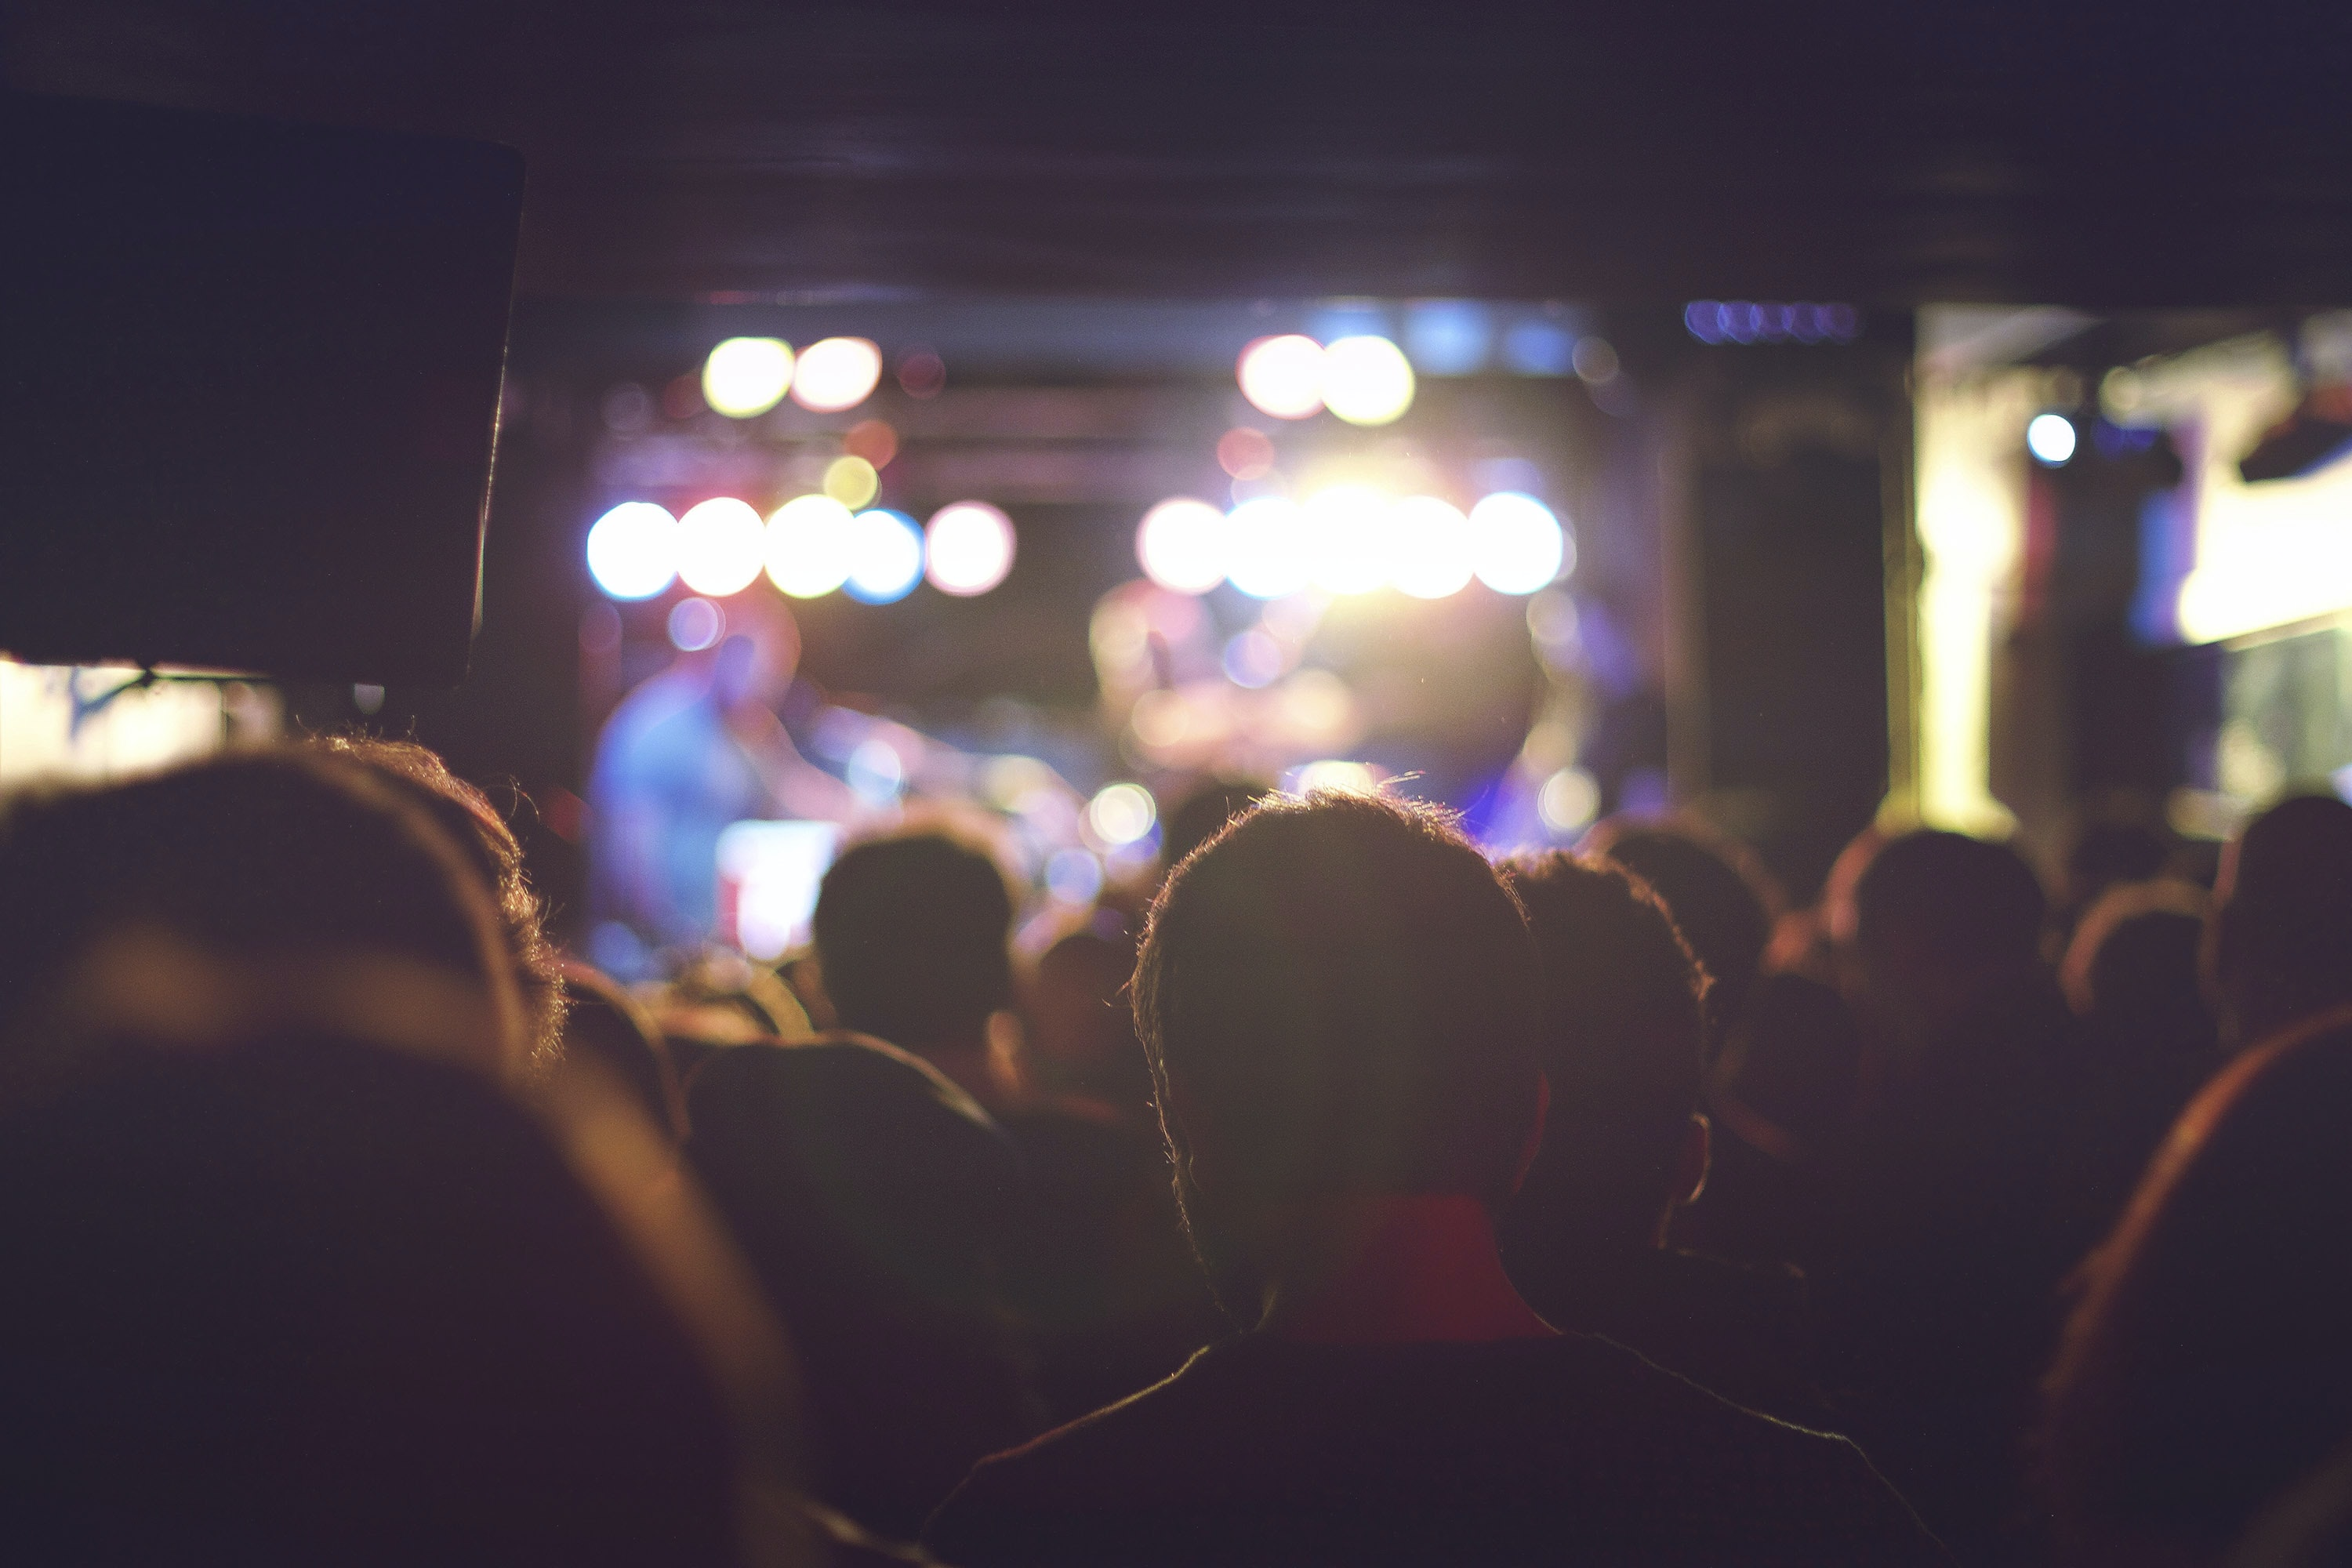 View from a crowd in a concert showing light on the stage in Café La Palma